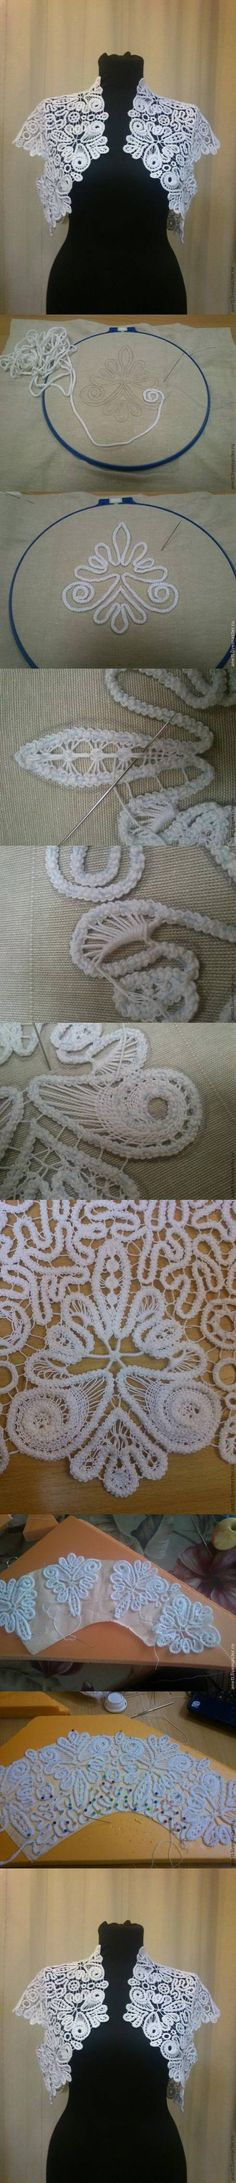 How to knit beautiful Romanian Laces tops step by step DIY tutorial instructions How to knit beautiful Romanian Laces tops step by step DIY... This is for an advanced crafter or seamstress. Not simple, but can be done.